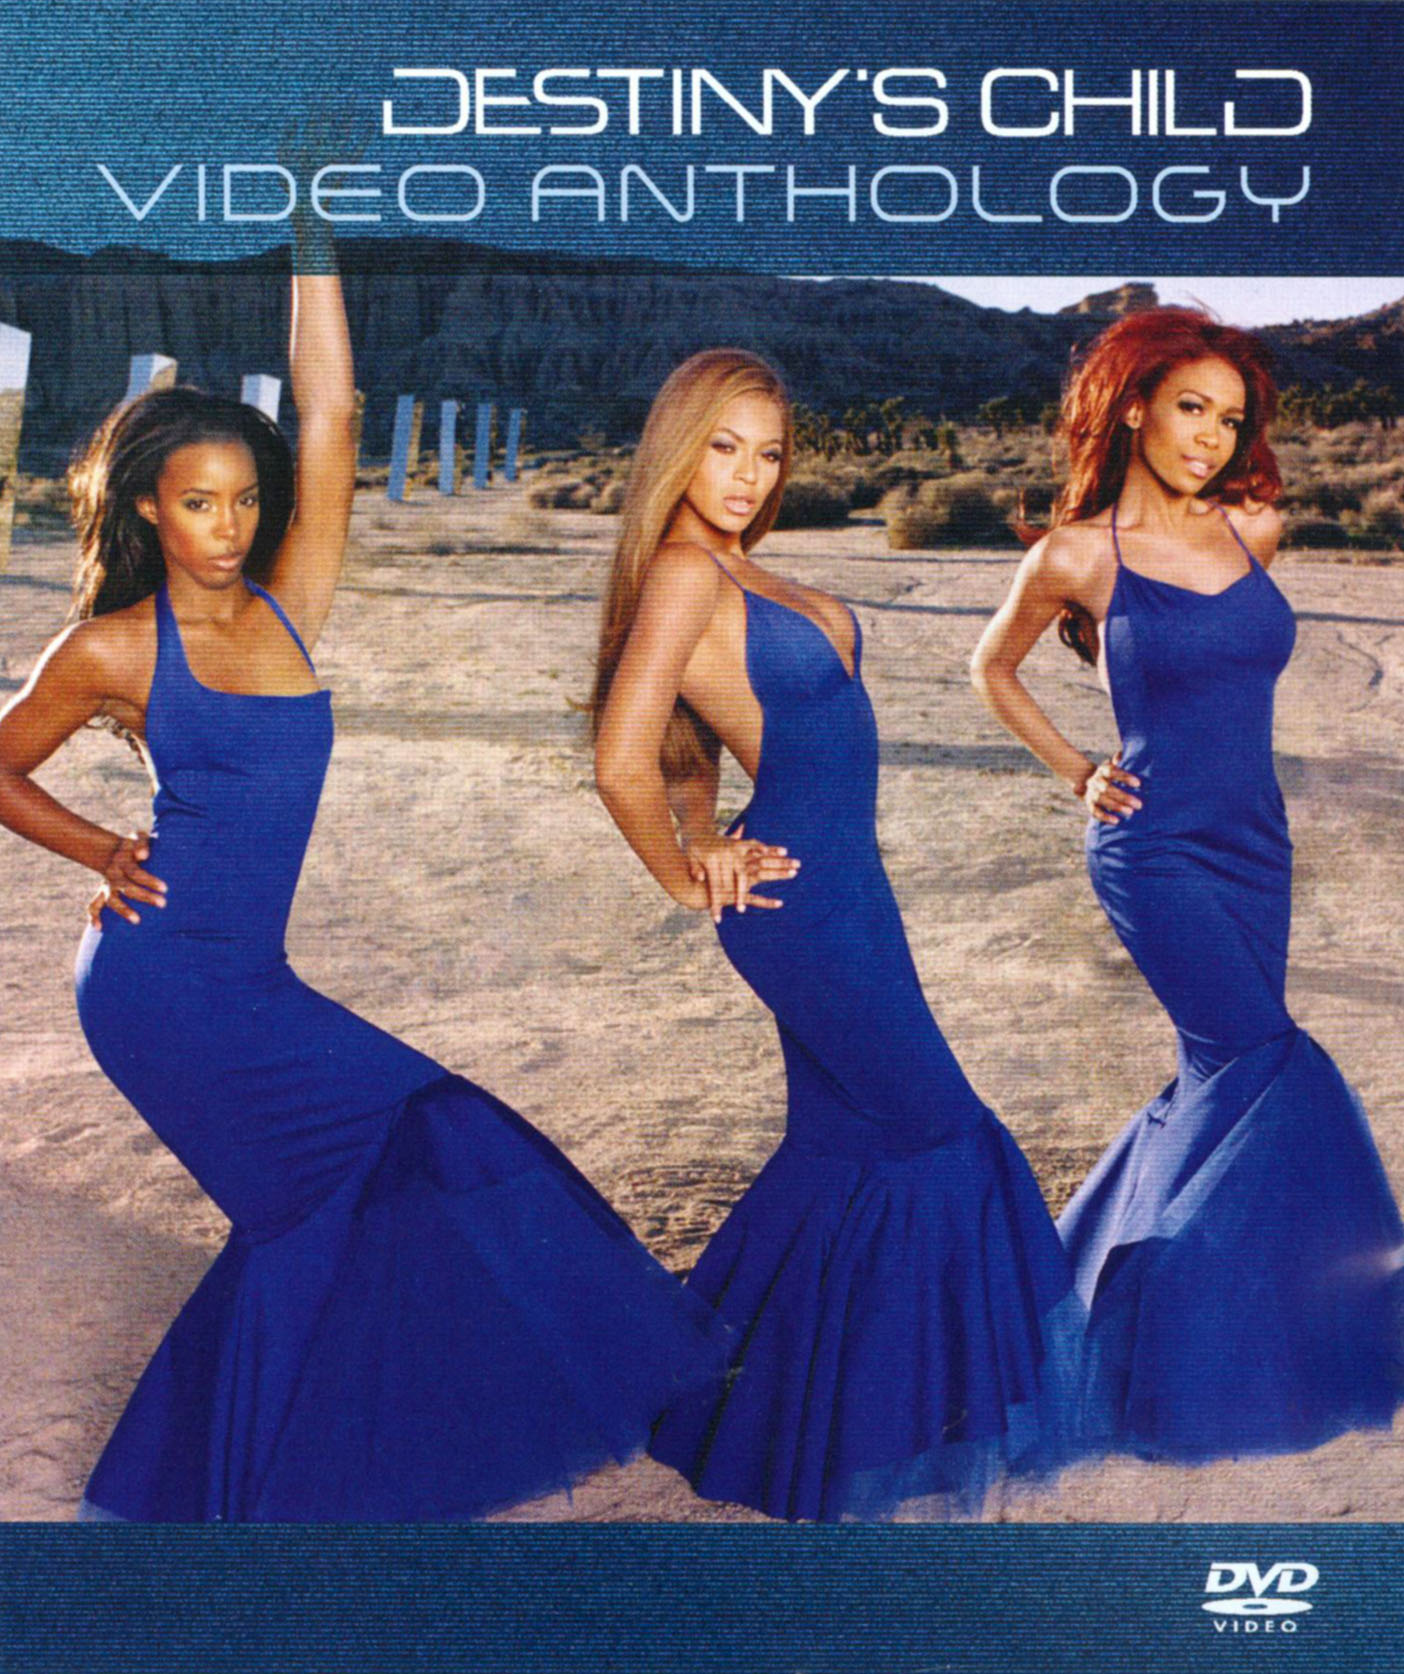 Destiny's Child: The Video Anthology (2013) - | Releases ...